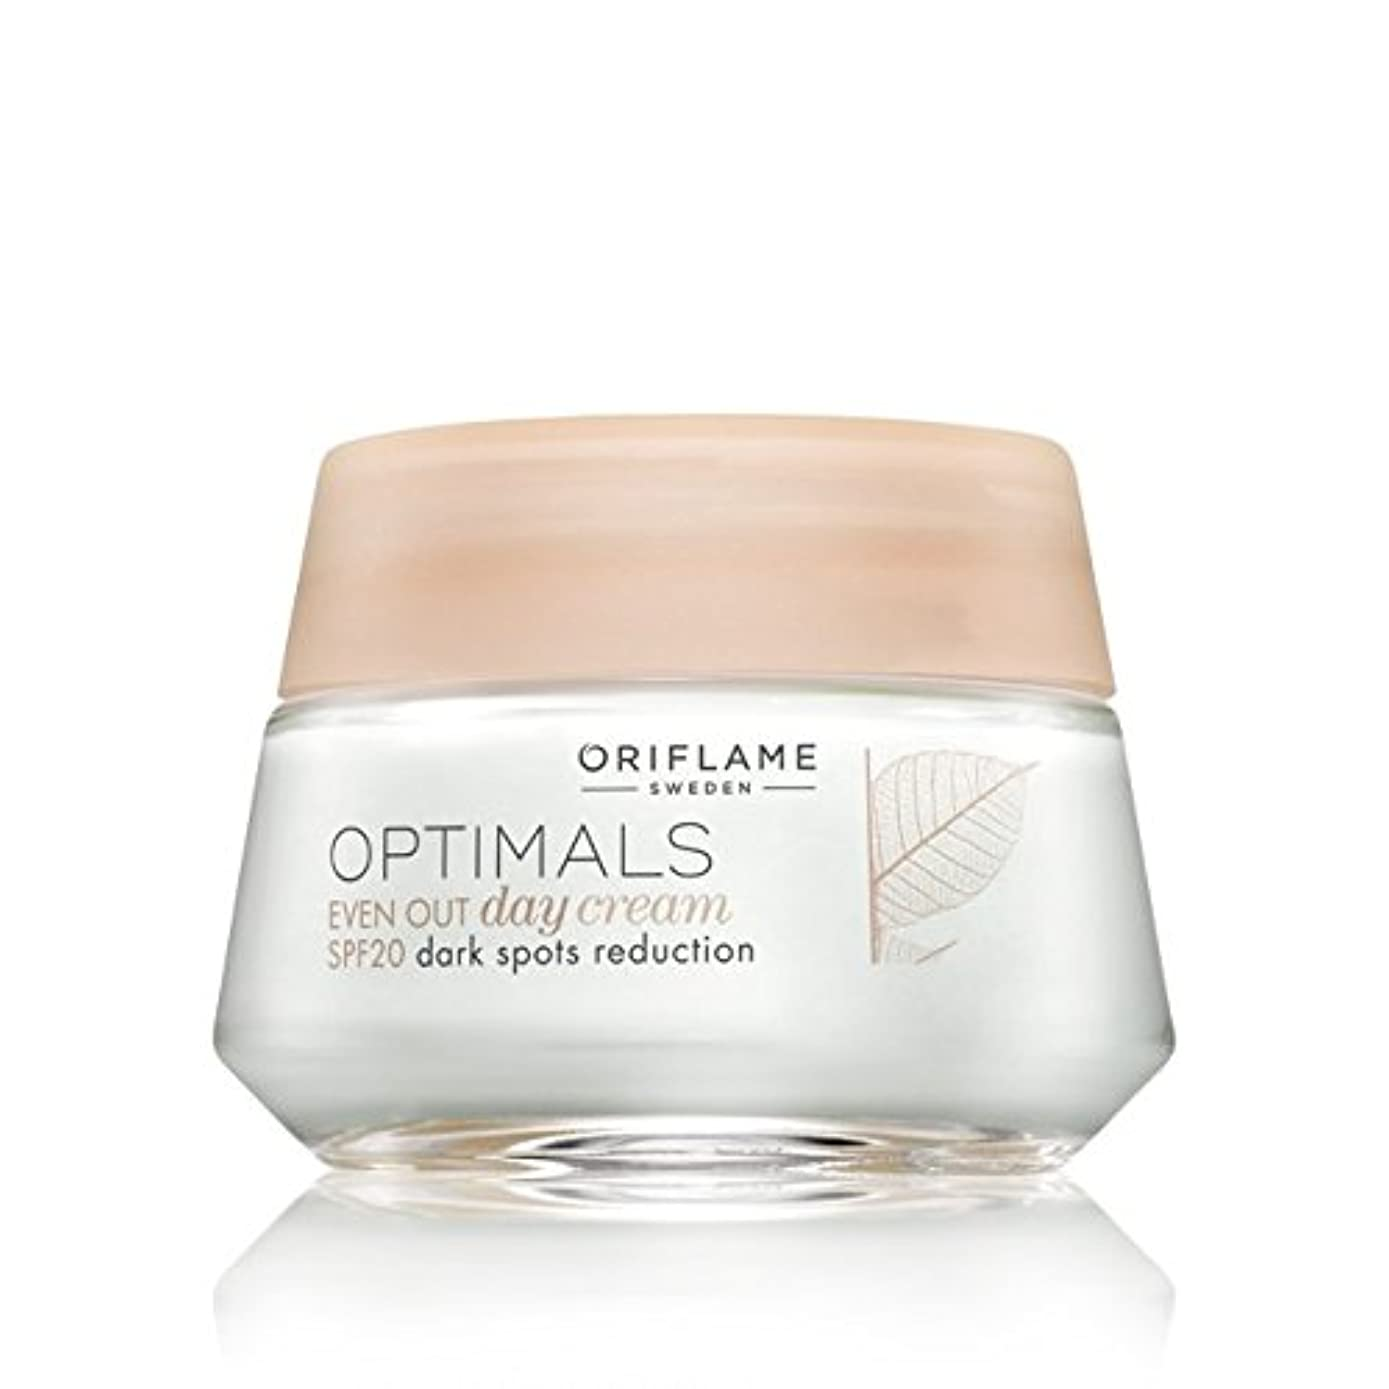 Oriflame Optimals SPF 20 Dark Spot Reduction Even Out Day Cream, 50ml